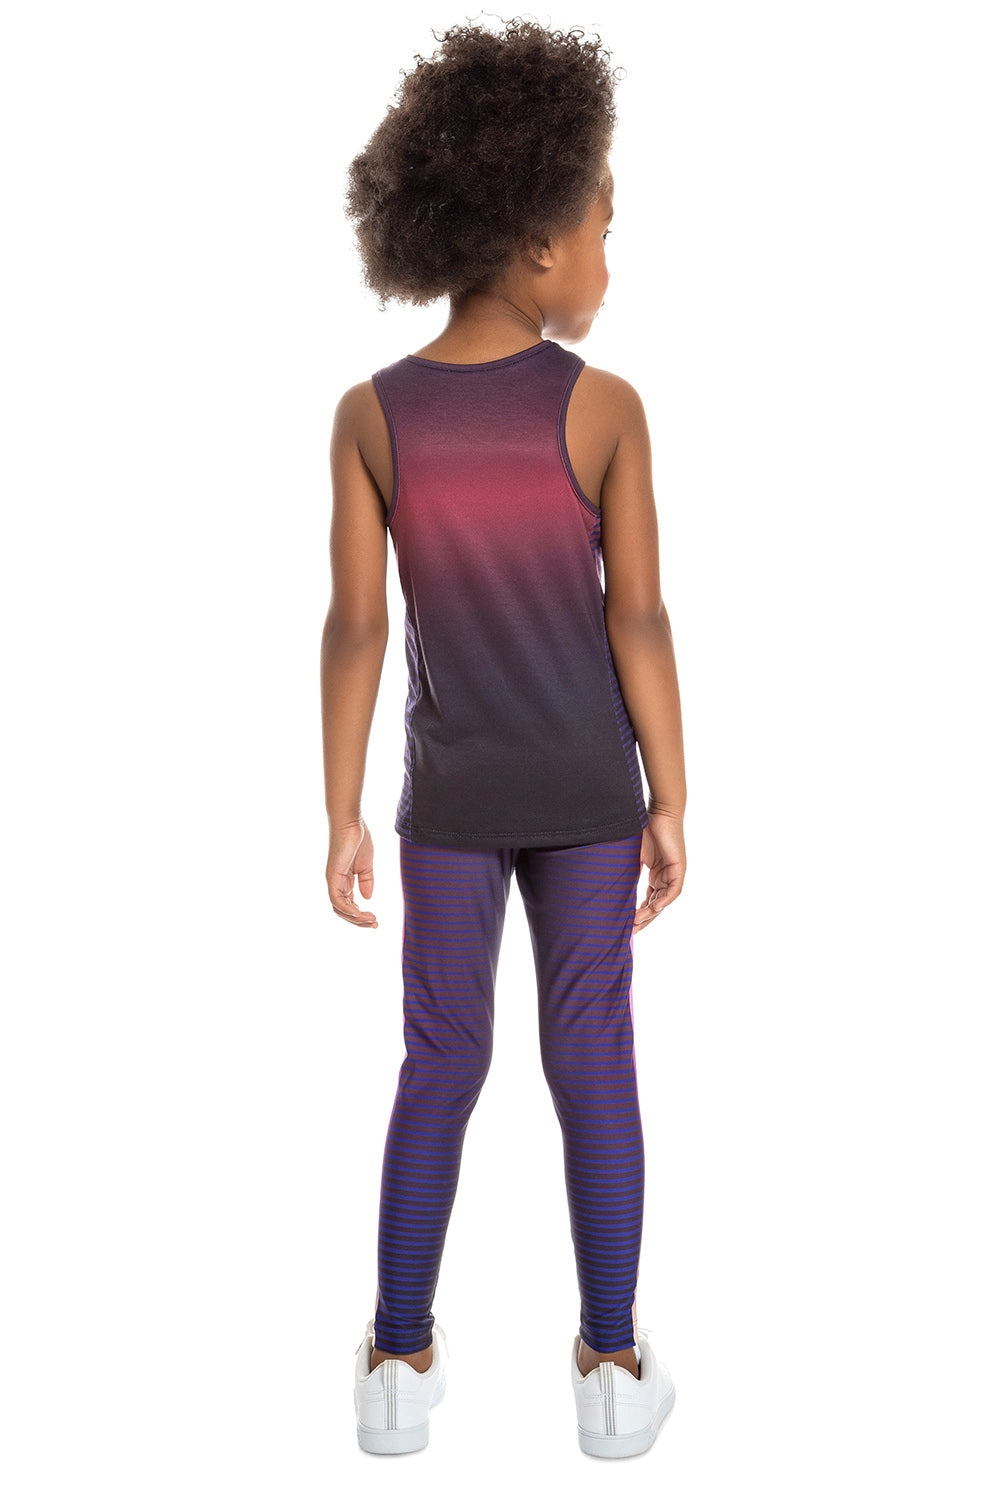 Ultimate Bonding Kids Legging 2